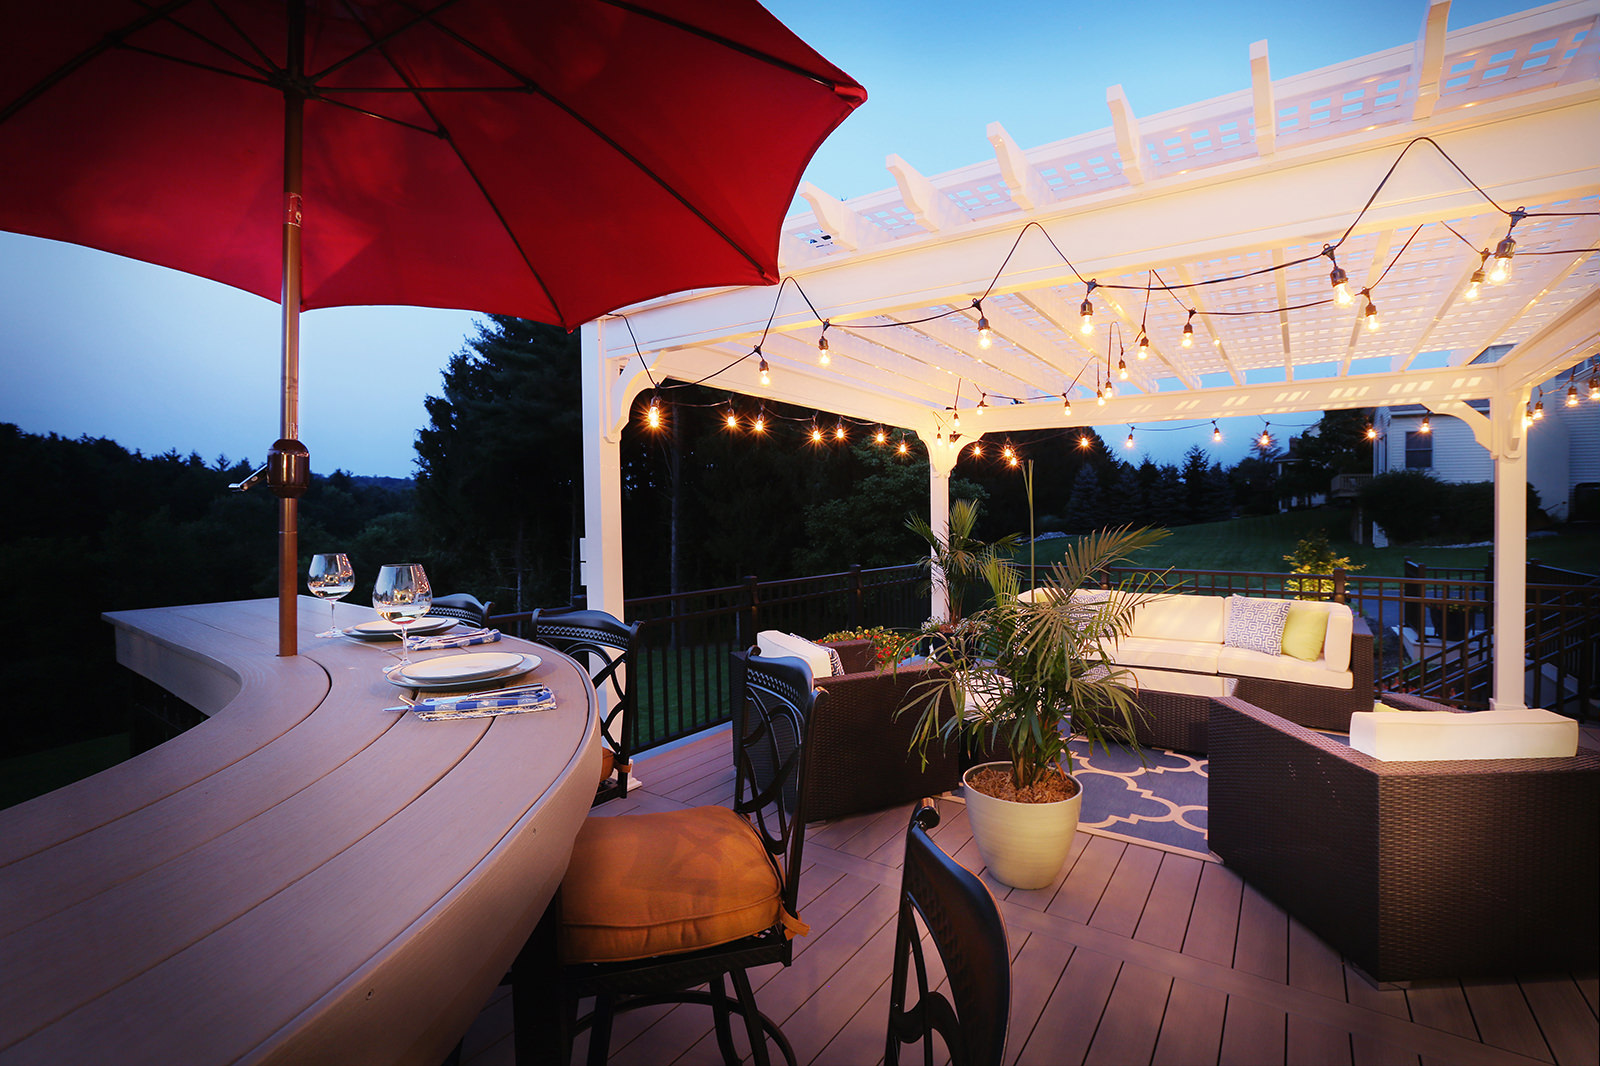 The homeowners requested destination areas within this outdoor living space.  Here, you can see the lounge and custom bar area, perfectly complimenting each other but performing their own function.